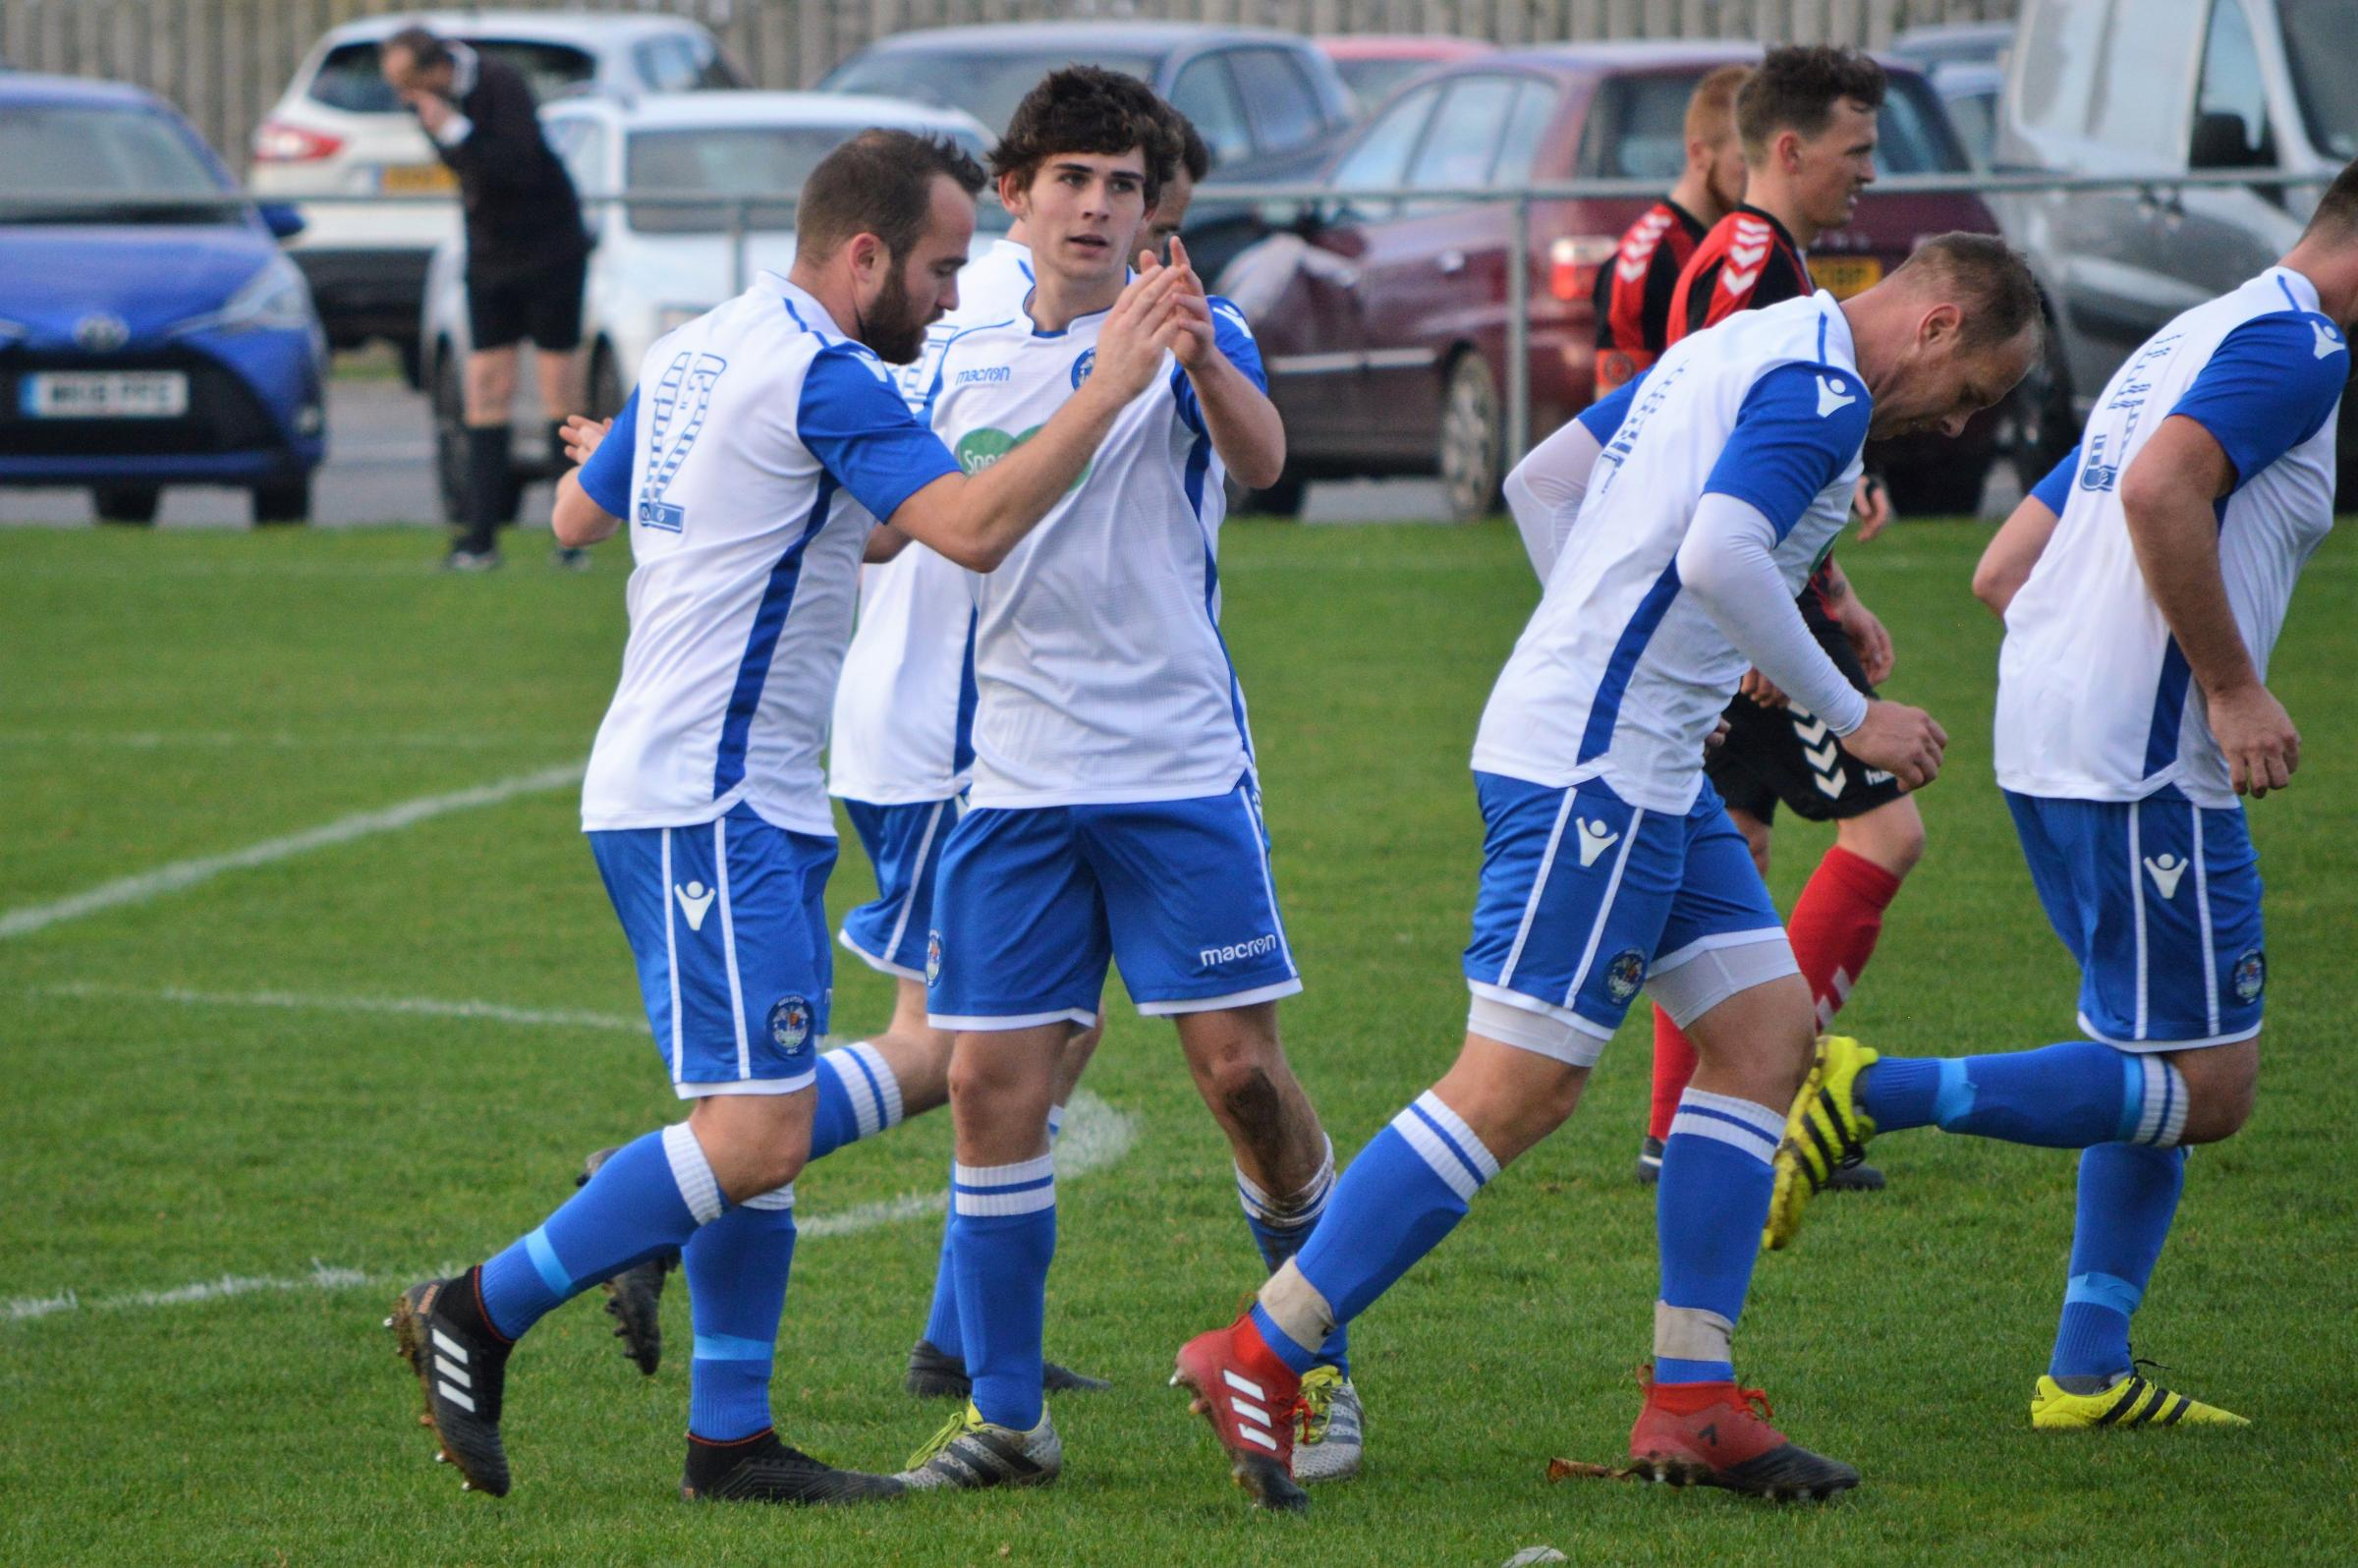 Helston's Jamie Thirkle (left) celebrates the second of his three goals in the 4-3 win at home to Penryn Athletic in the Combination League on Saturday